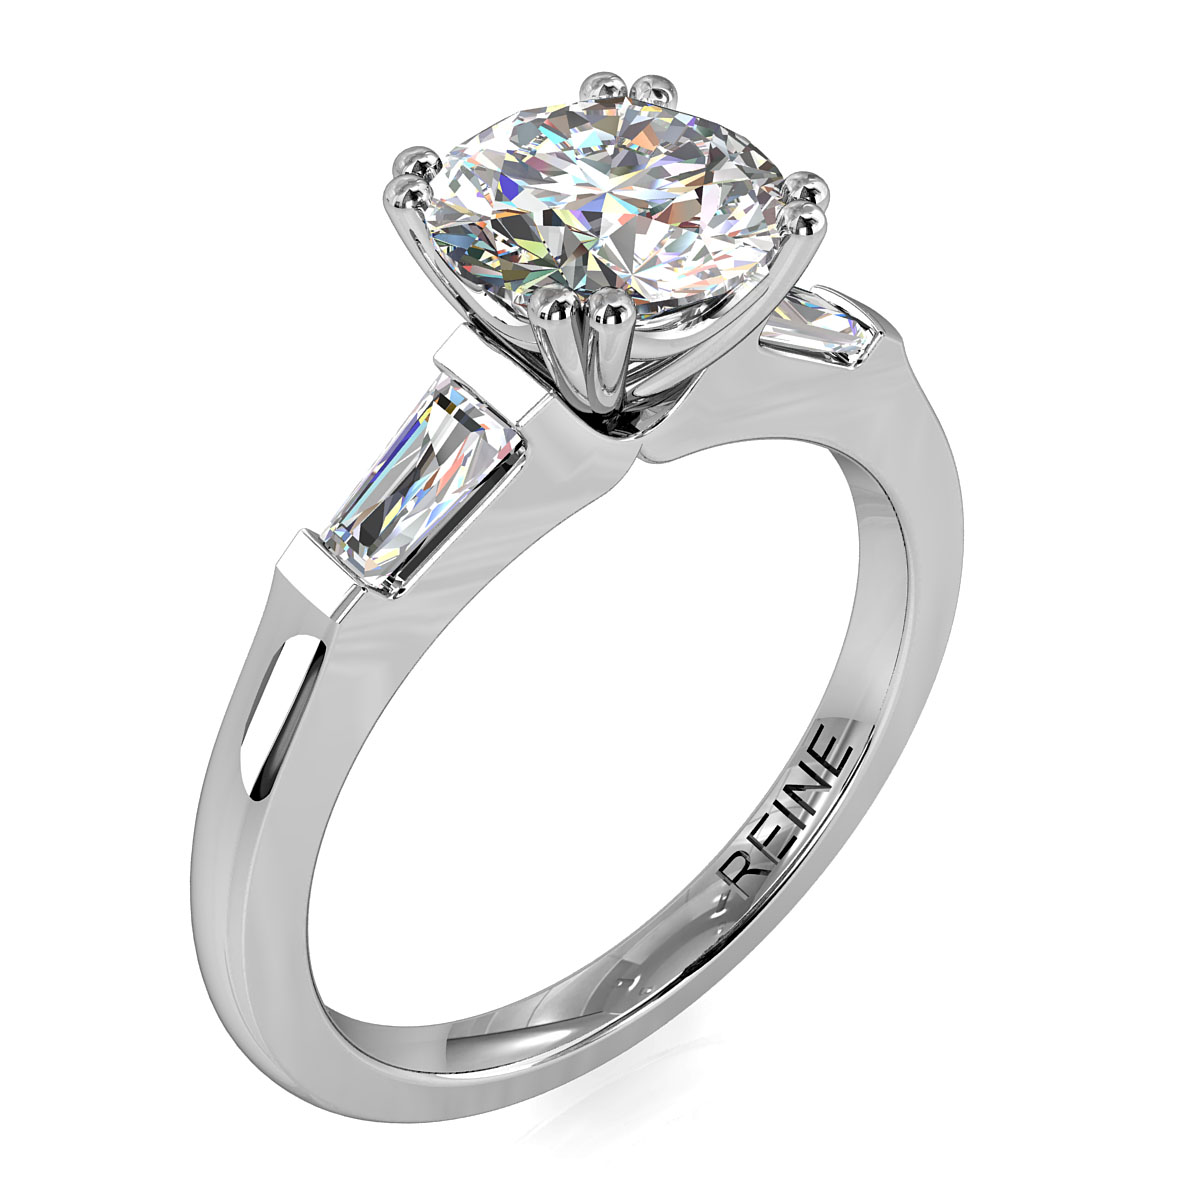 Round Brilliant Cut Diamond Trilogy Engagement Ring, Stones 4 Double Claw Set with Tapered Baguette Side Stones with a Classic Undersetting.